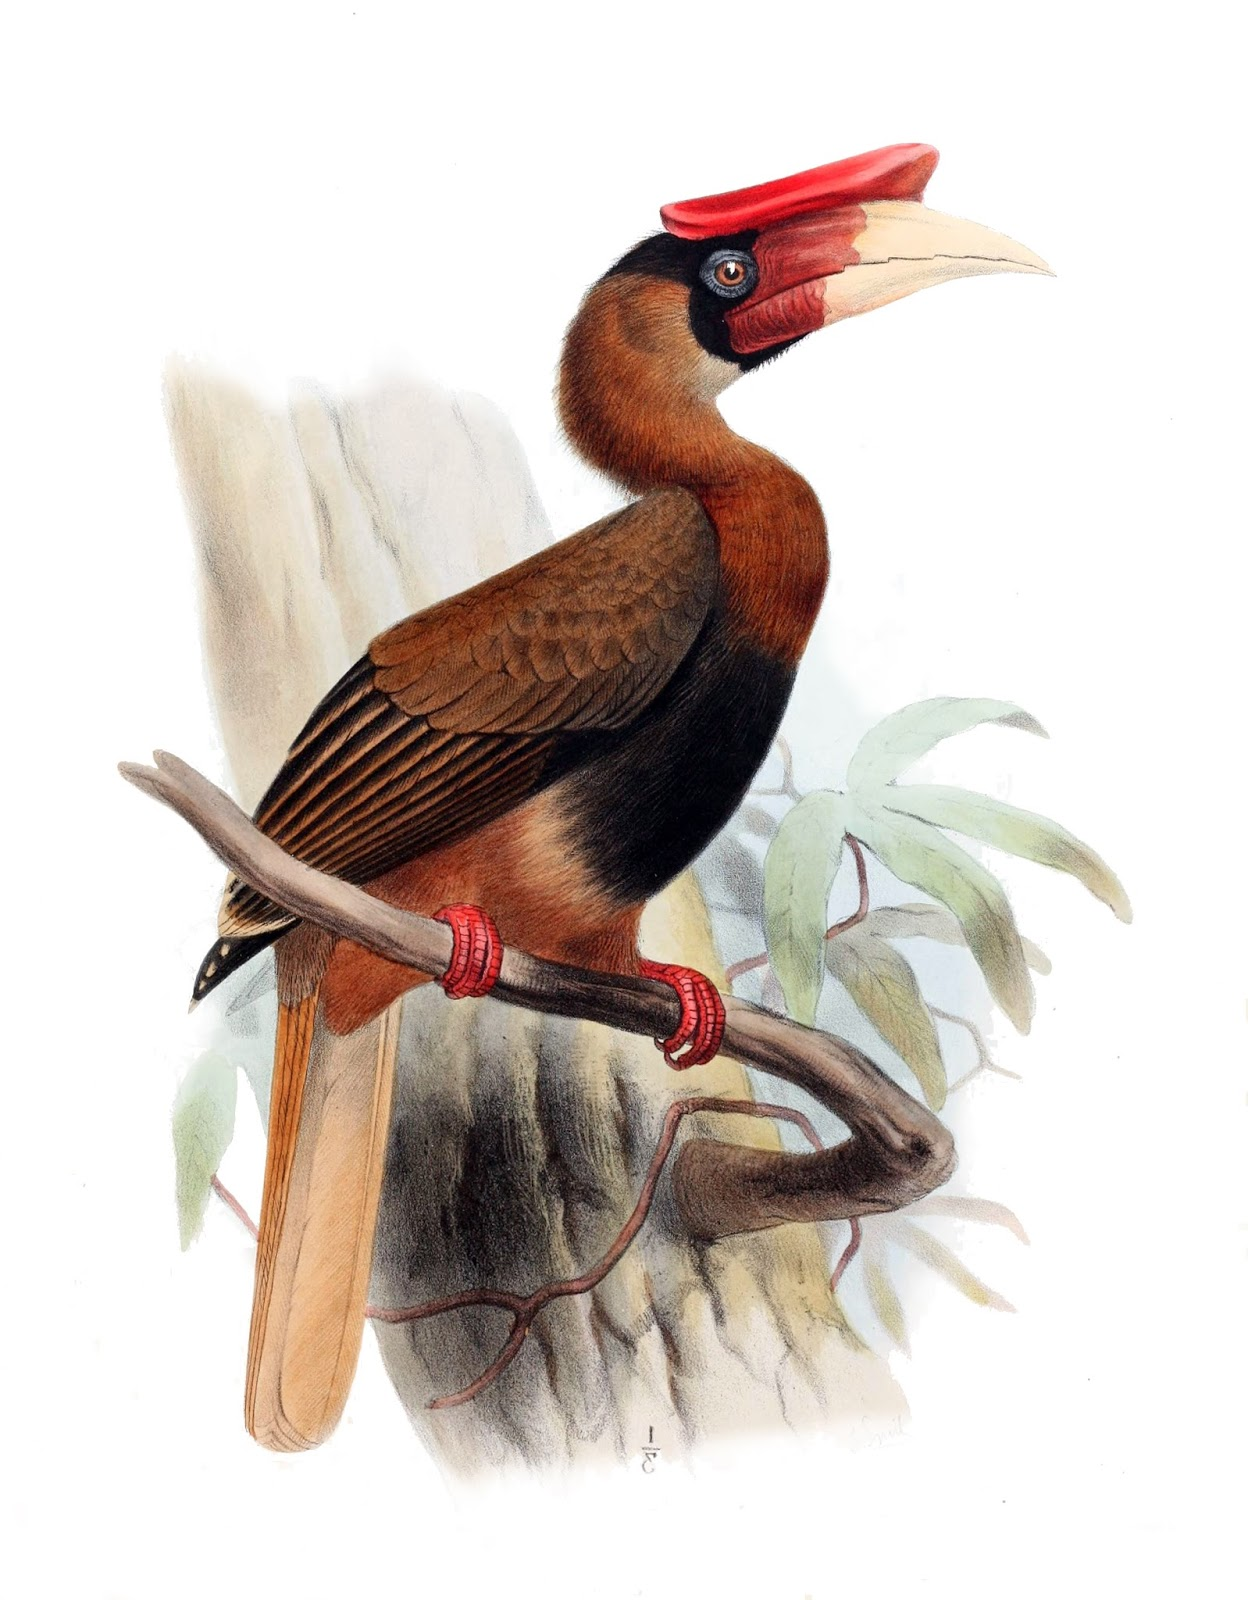 Rufous Hornbill - Hornbills pair for life and have an unusual breeding behaviour.